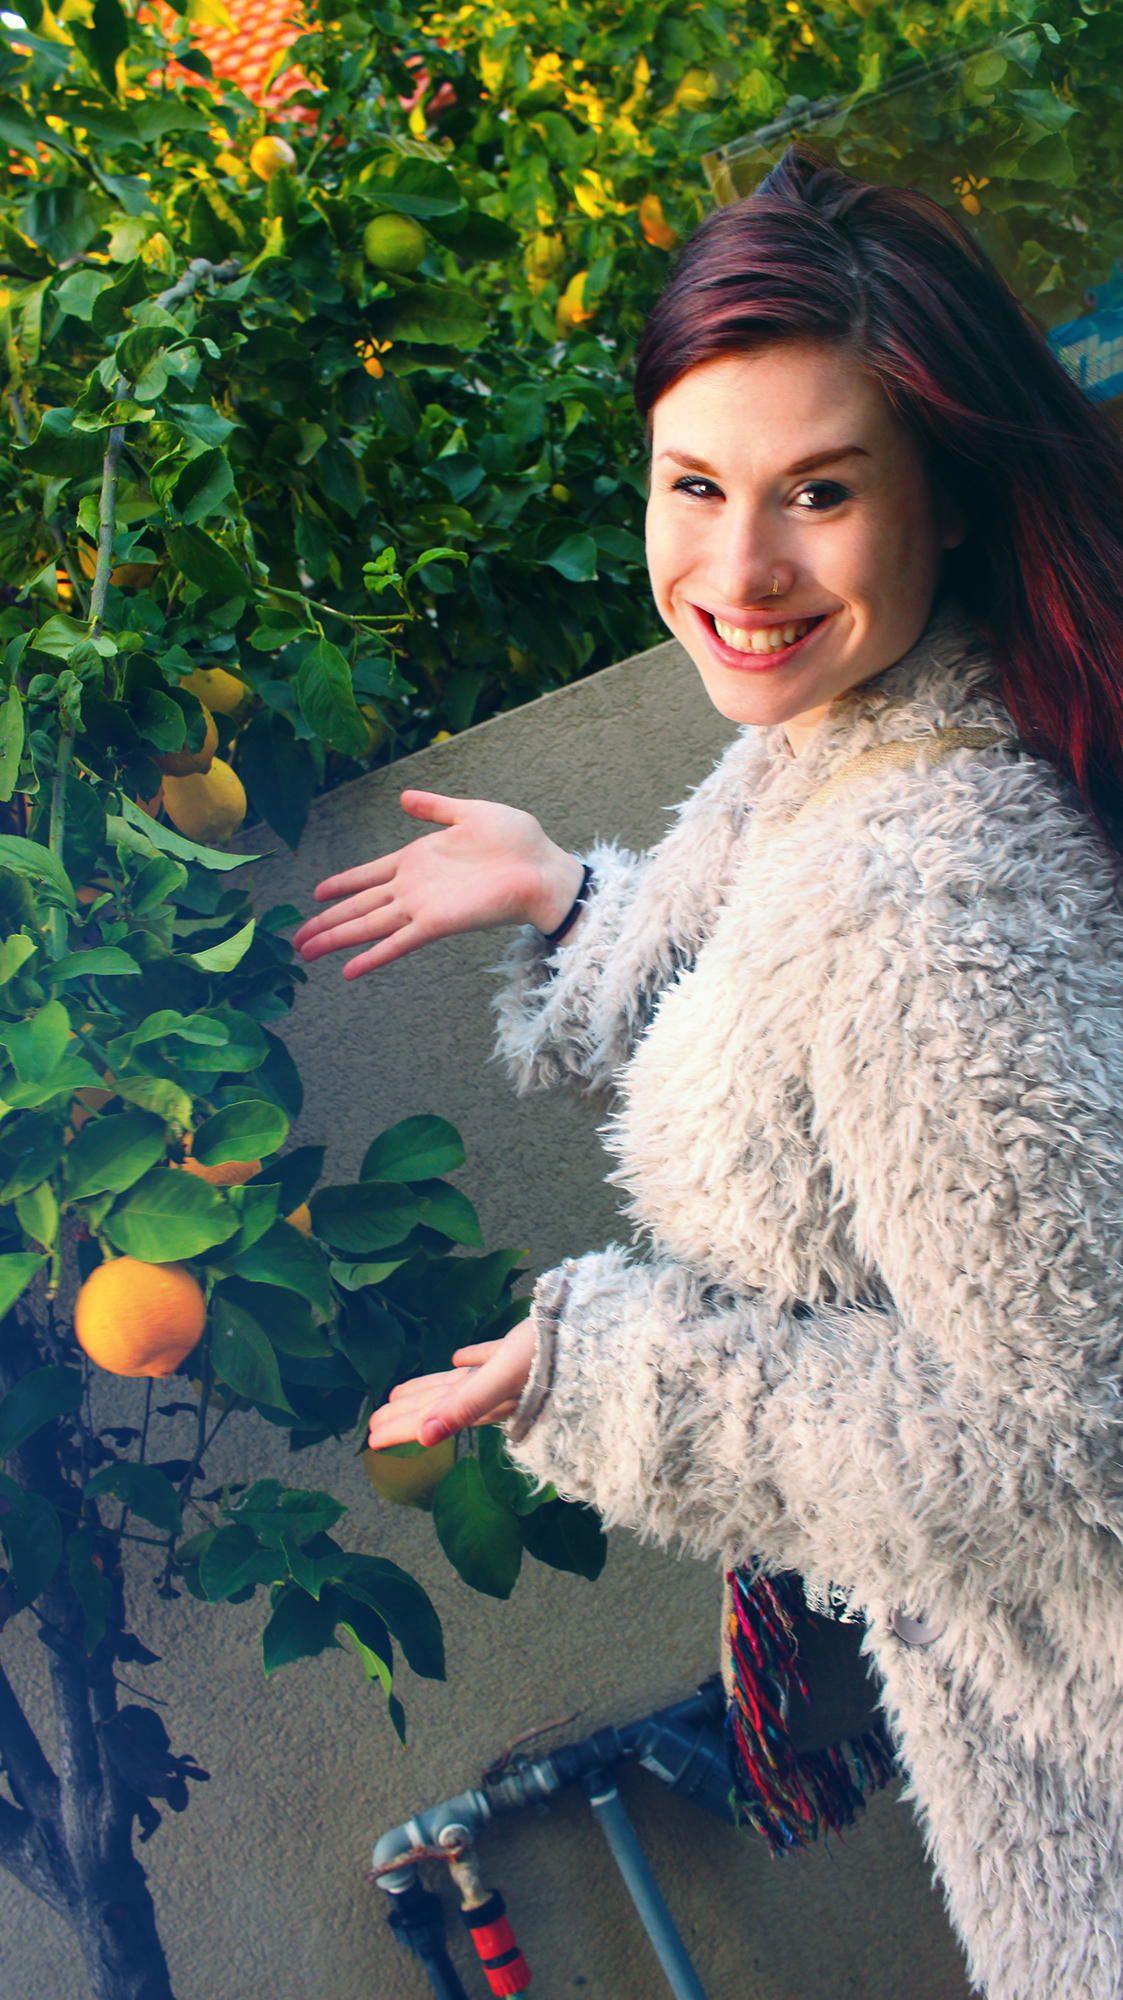 Jessica showcases oranges in the backyard of Nir's family home in Hadera, celebrating the second night of Hanukkah with Shorashim Israel, 2016.